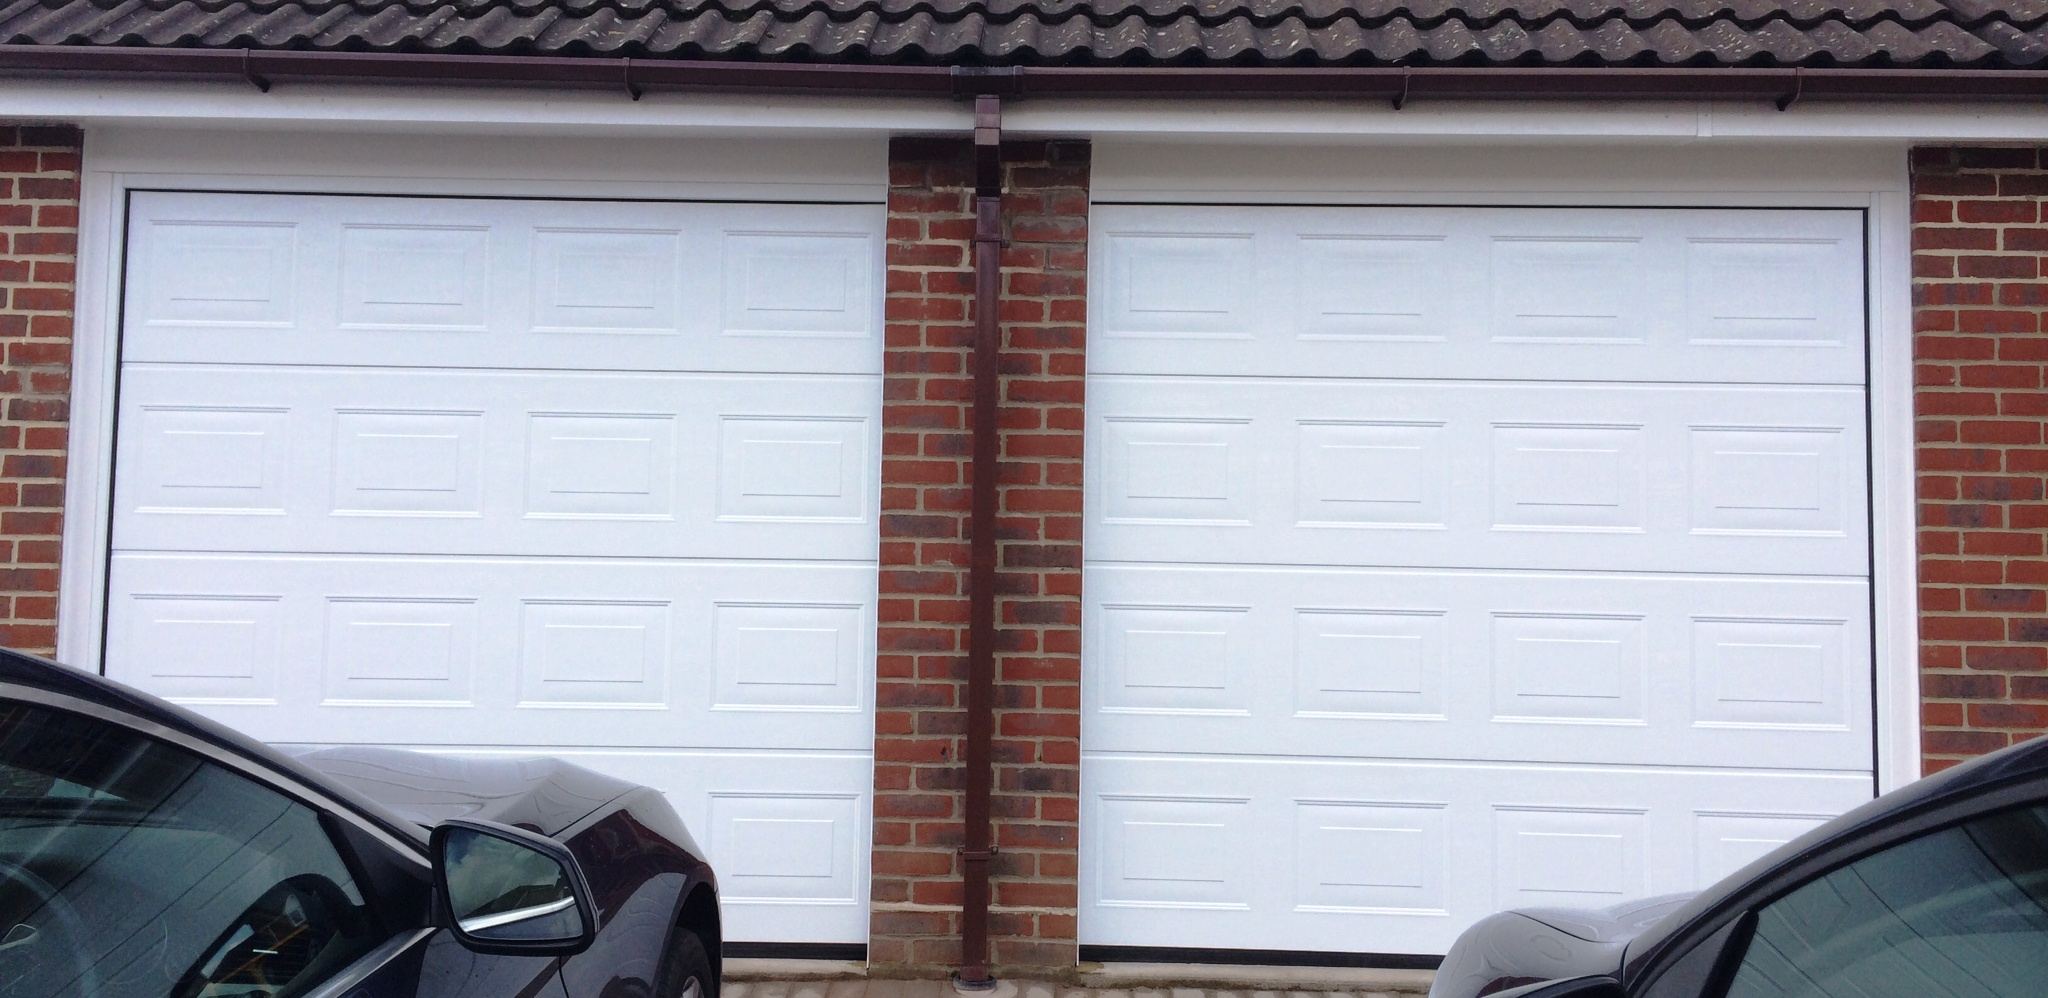 Case study Increasing width of garage doors in Horsham & Case study: Increasing width of garage doors in Horsham | South East ...